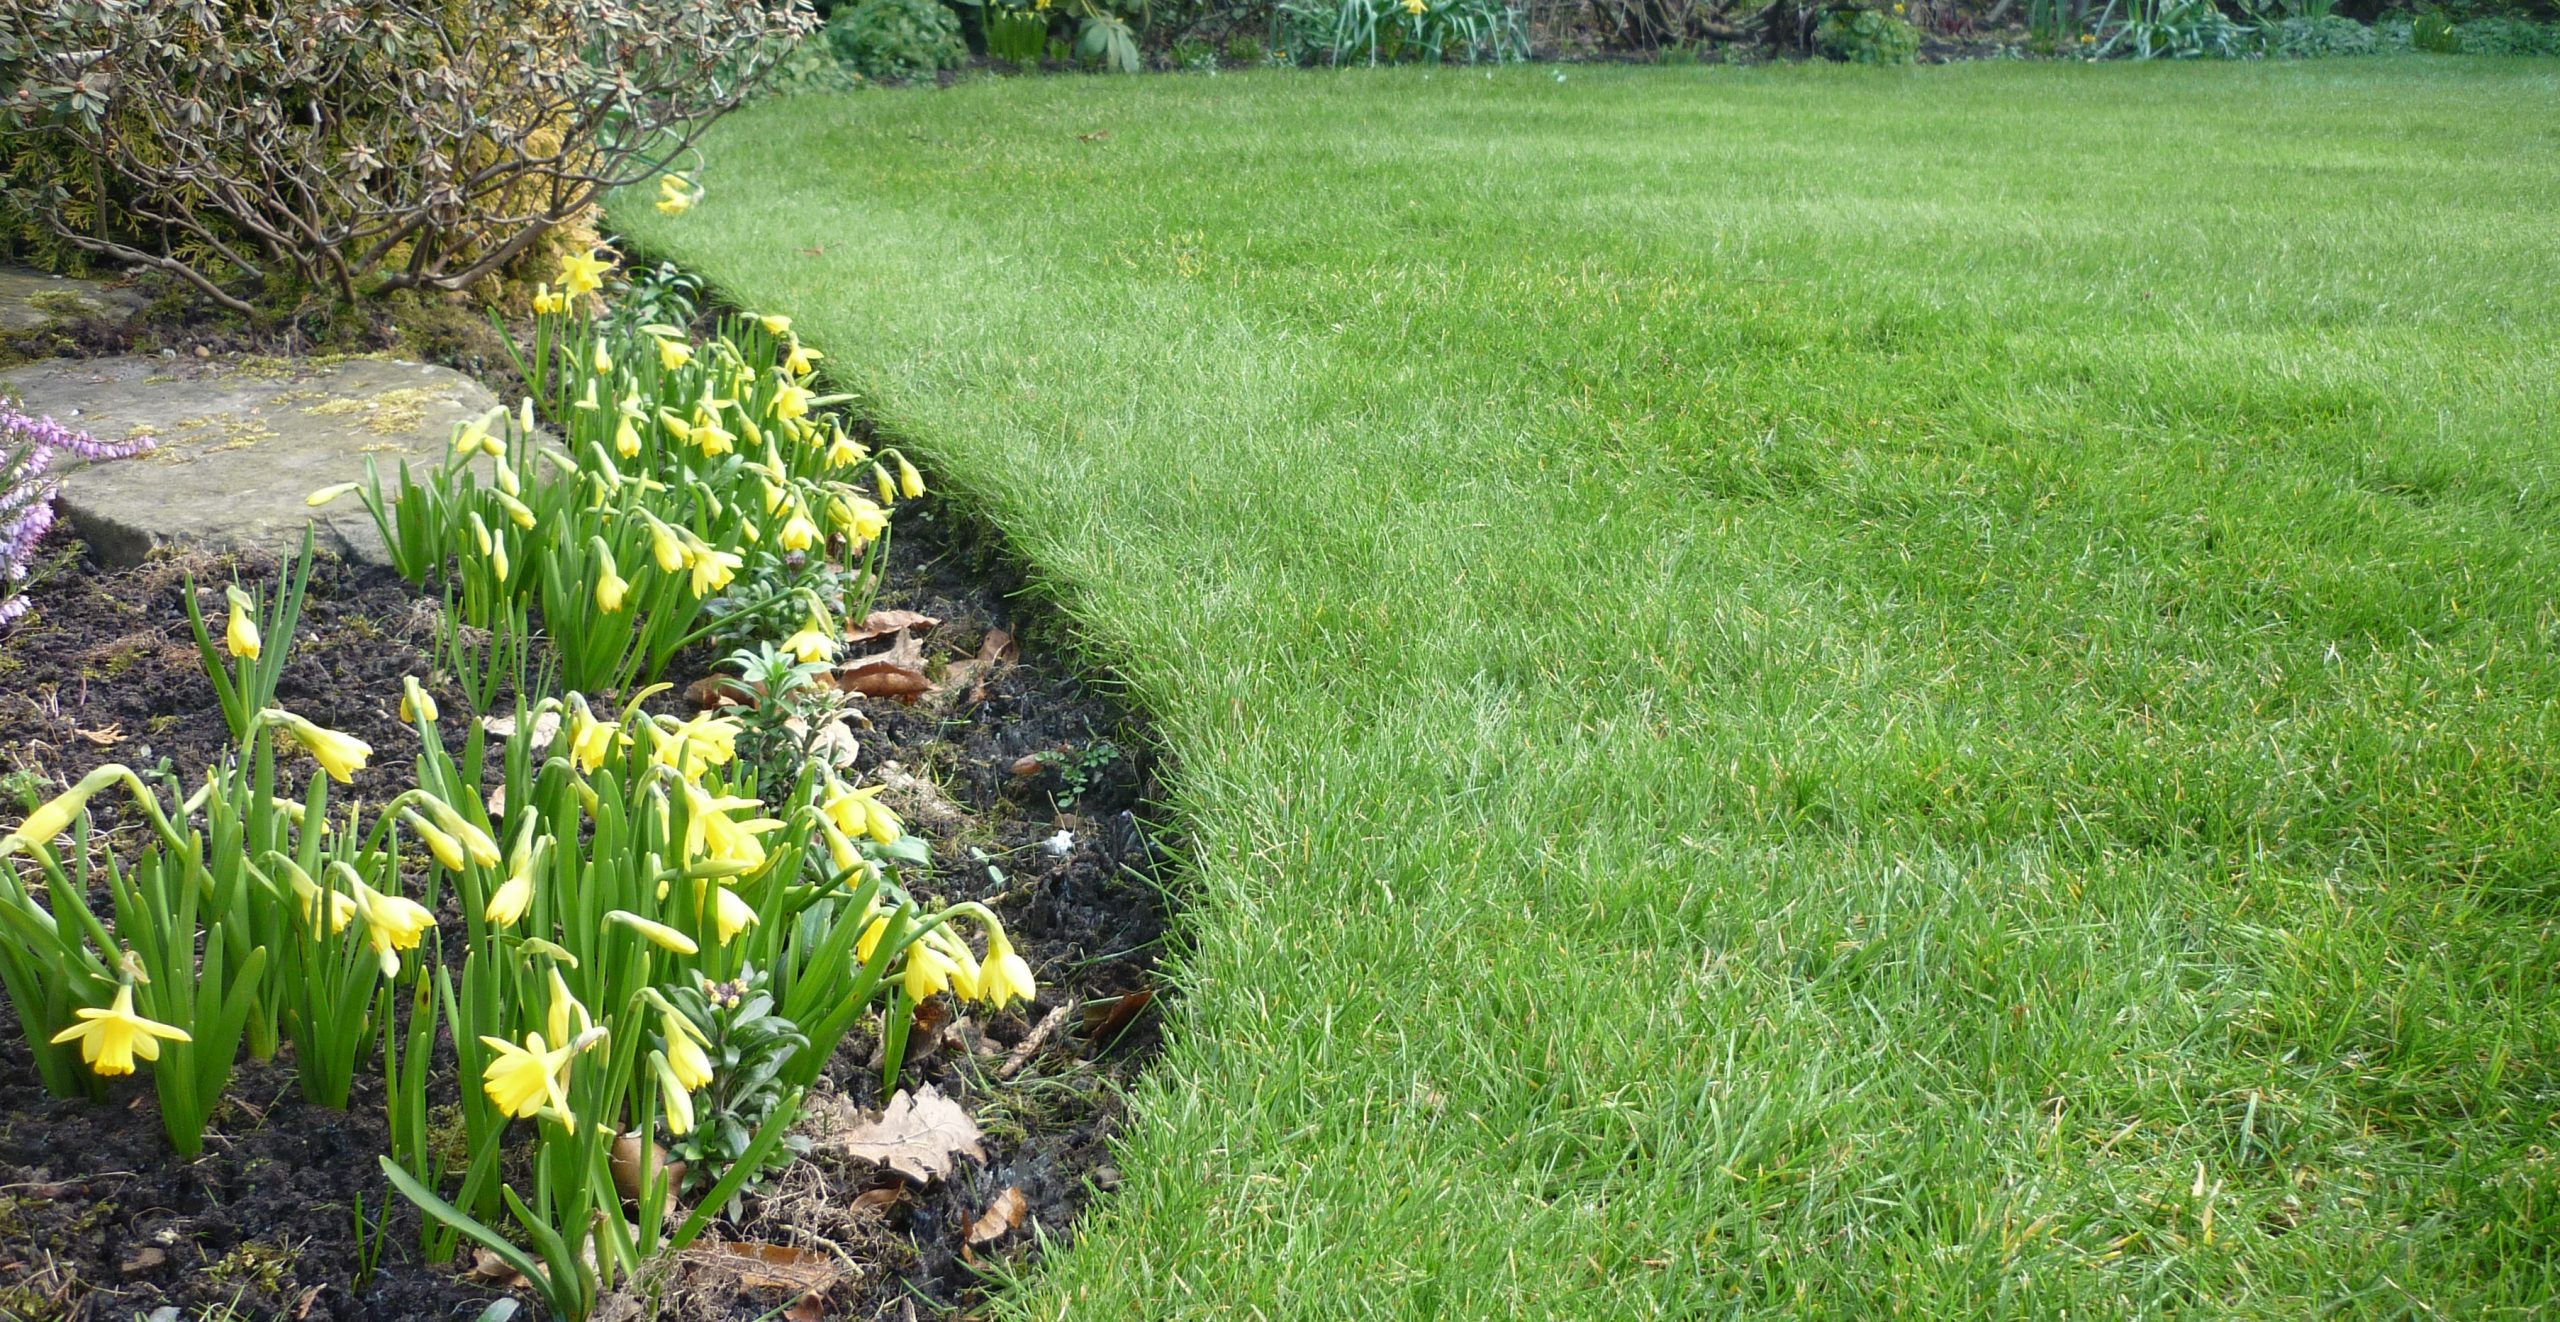 A beautiful lawn ready for a spring lawn feed